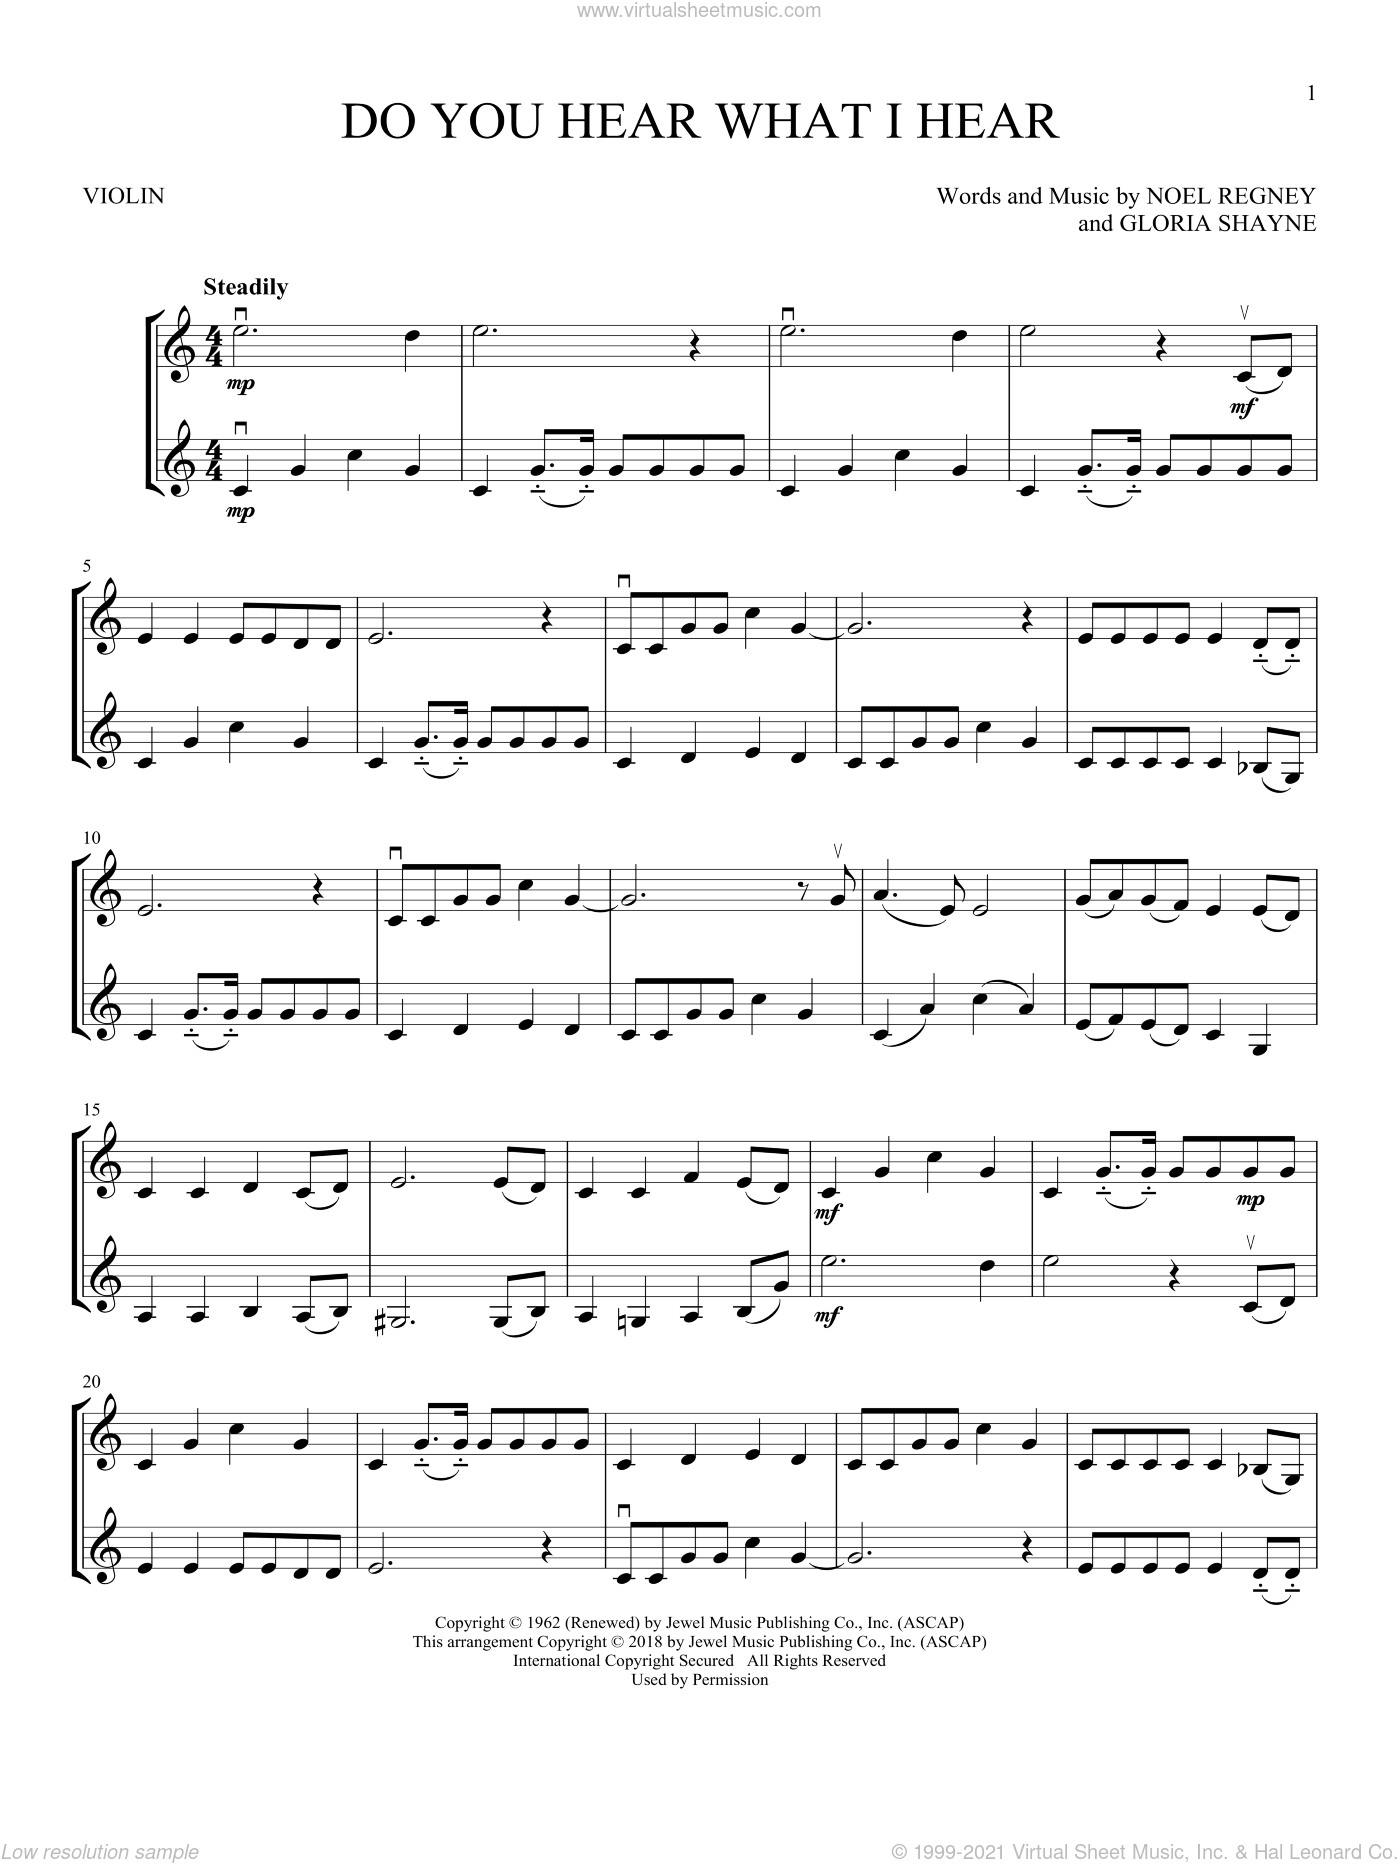 Do You Hear What I Hear sheet music for two violins (duets, violin duets) by Gloria Shayne and Noel Regney, intermediate skill level